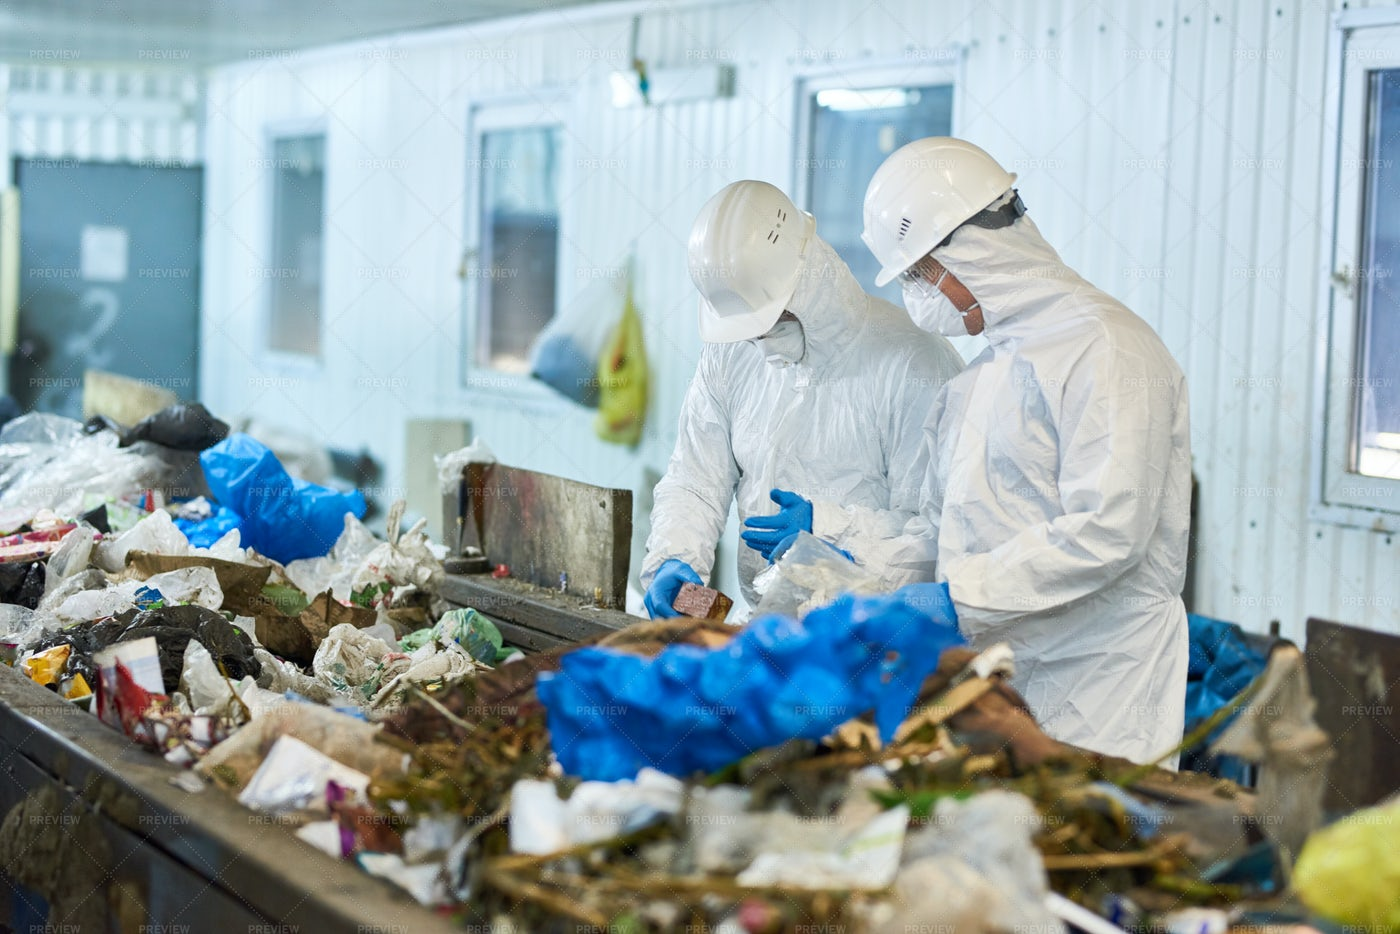 Trash Sorting On Waste Processing...: Stock Photos